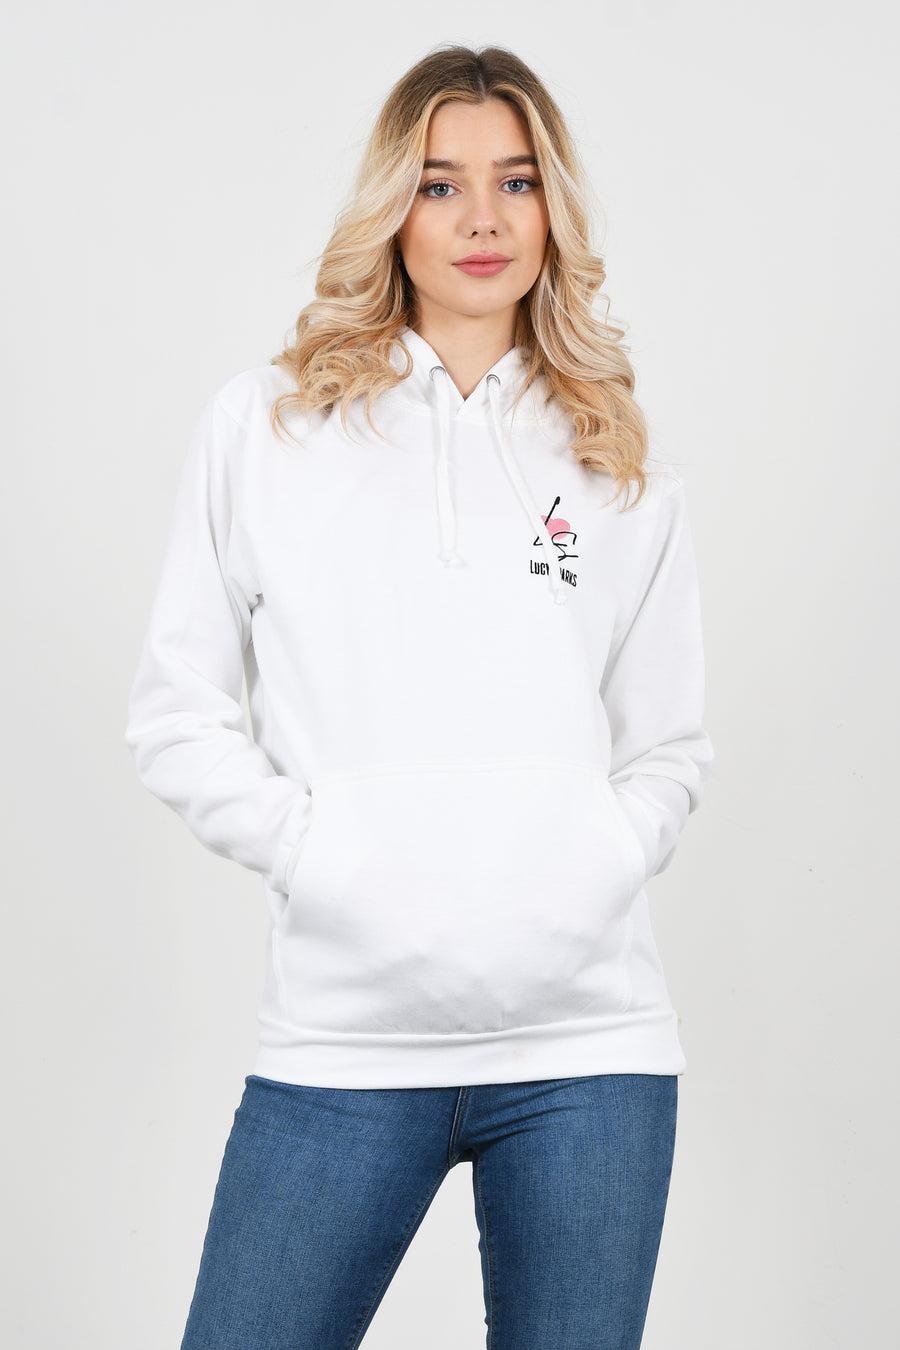 Lucy Sparks Embroidered Logo Hoodie